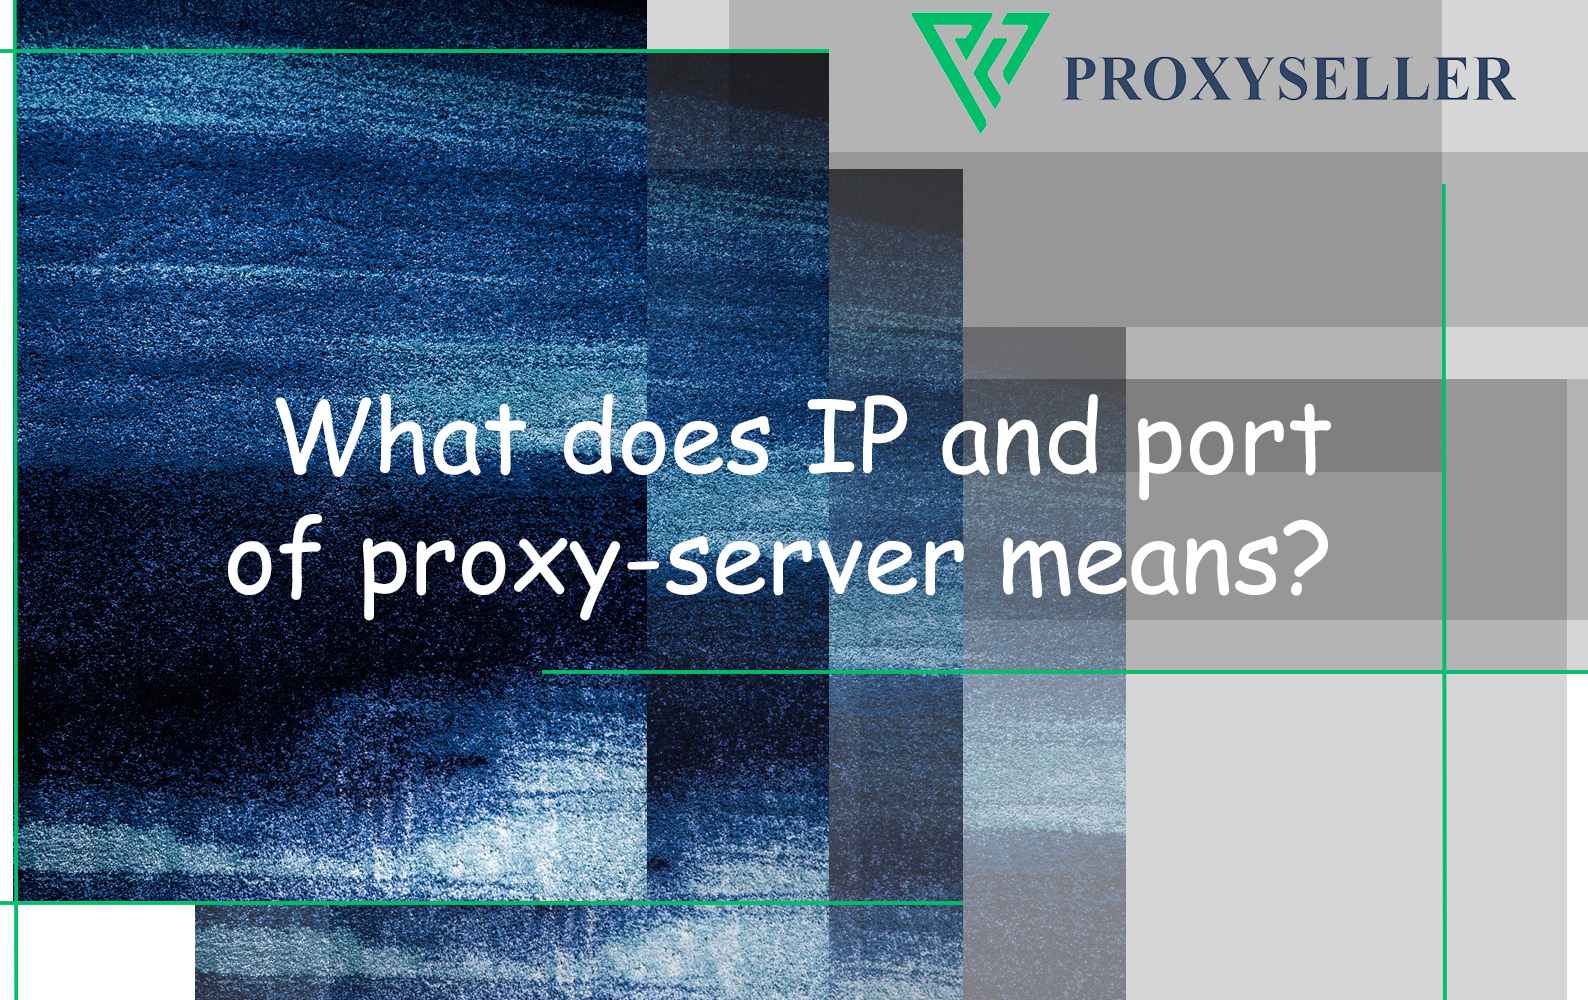 What does IP and port of proxy-server means?